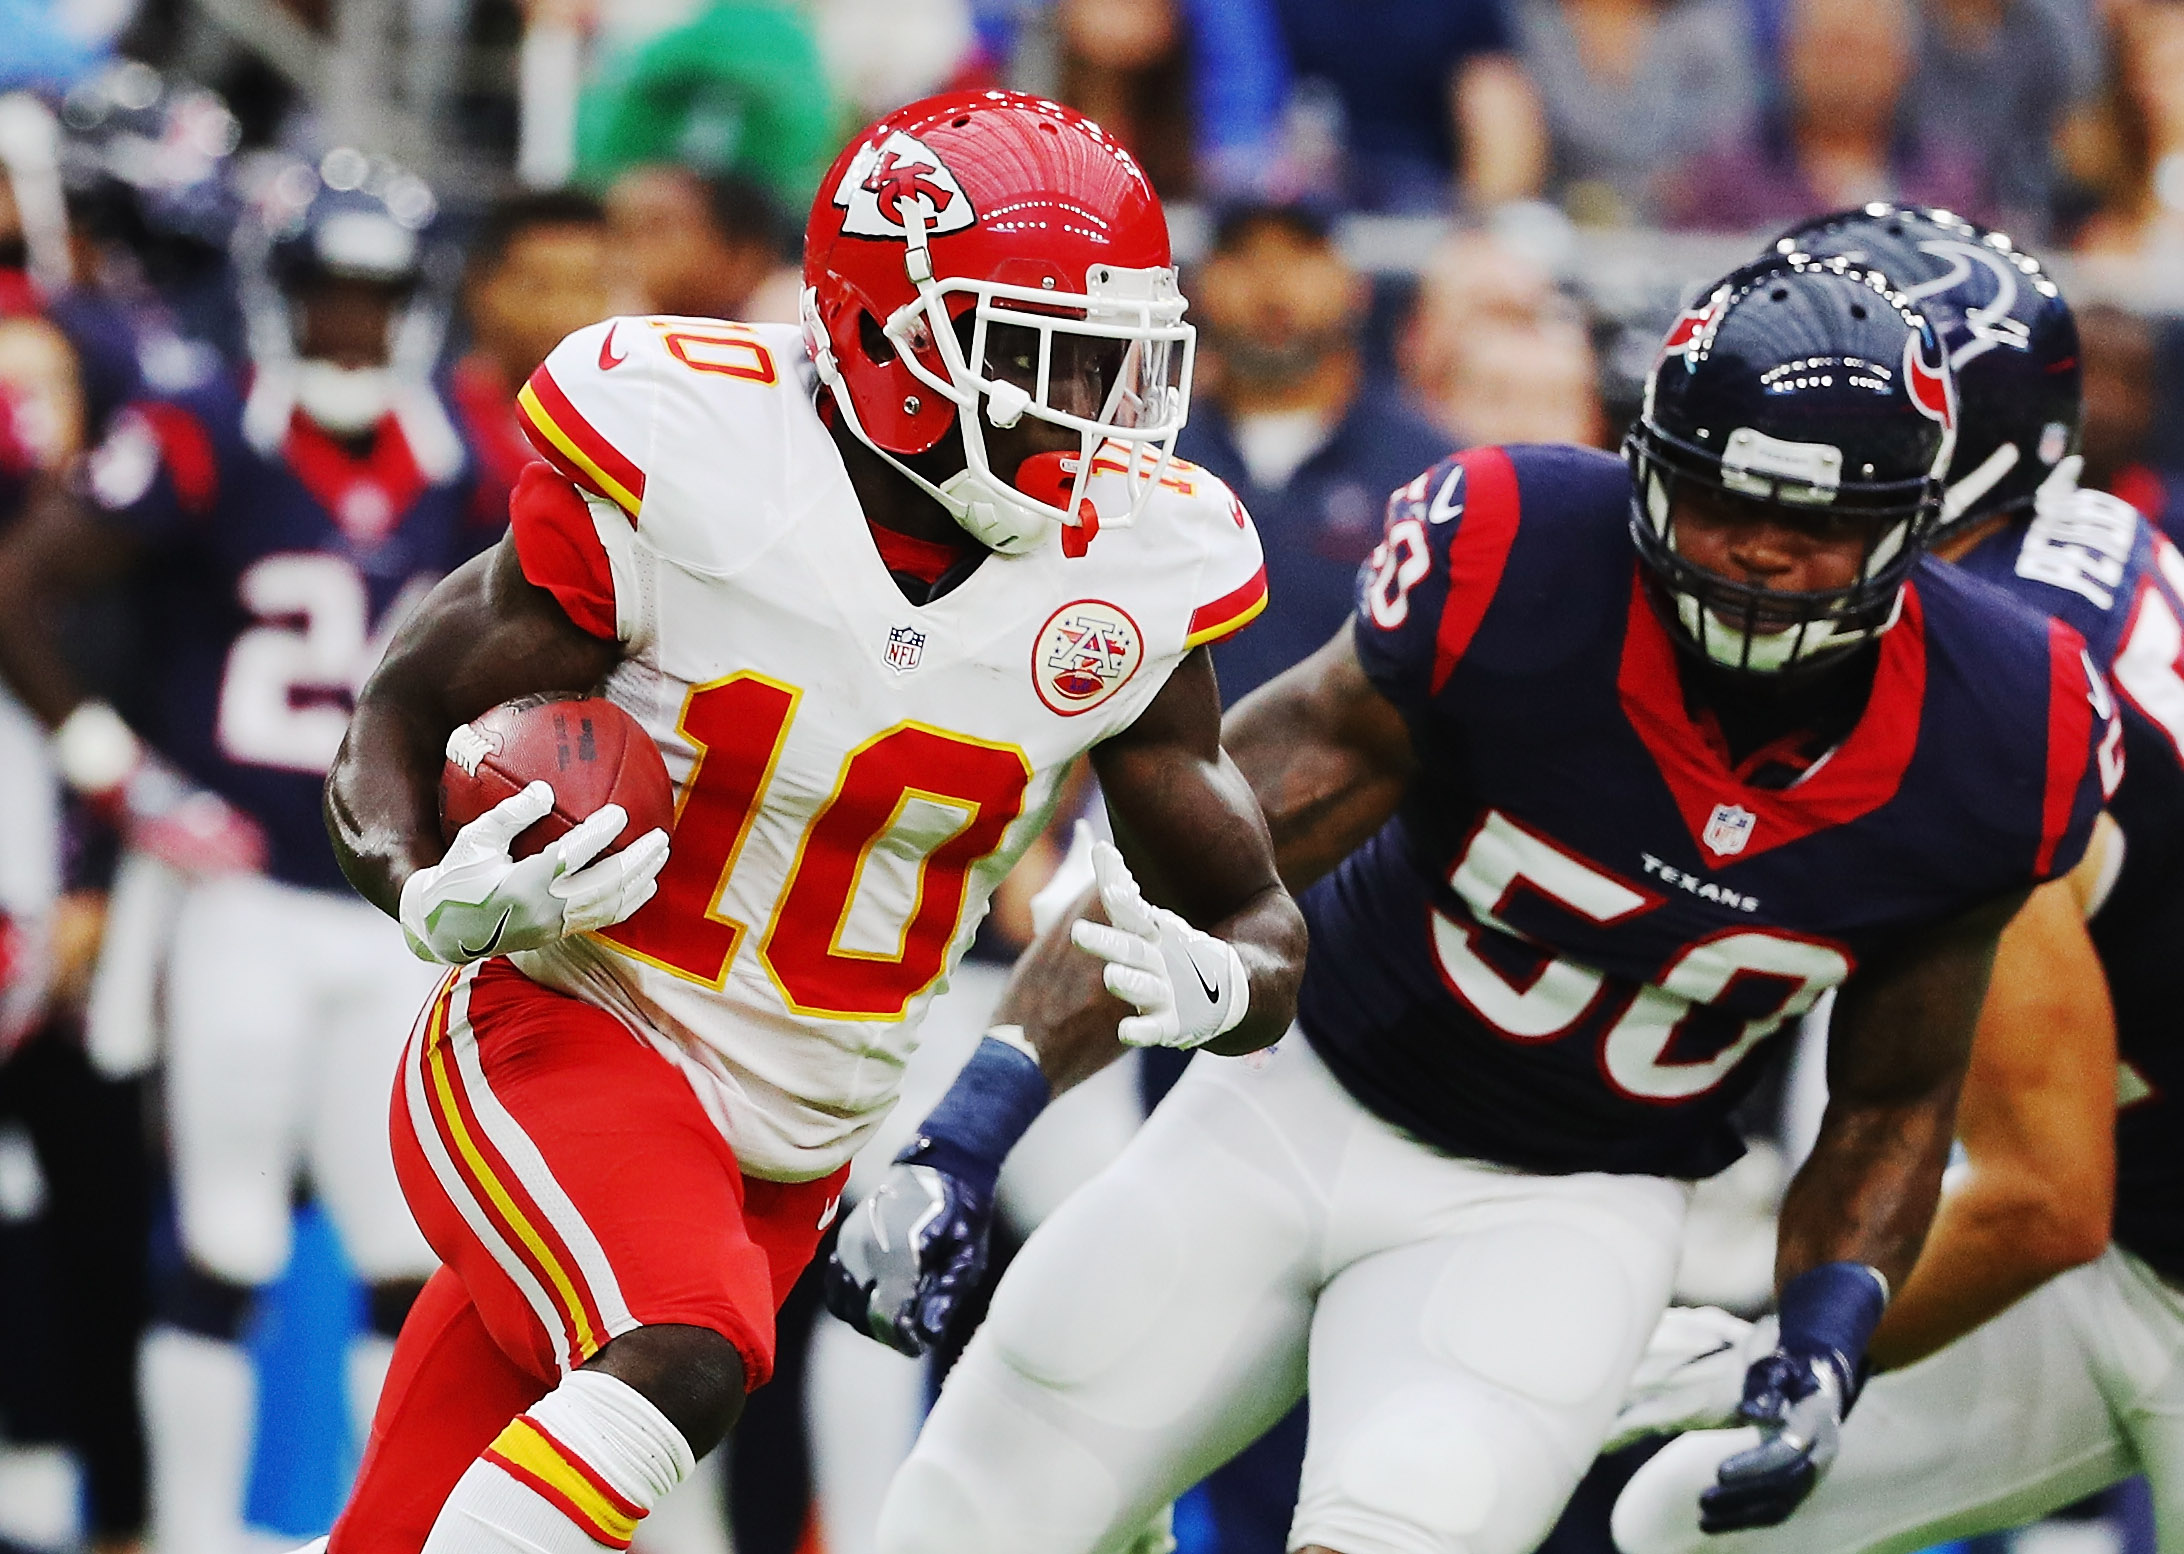 Texans star will miss rest of Chiefs game